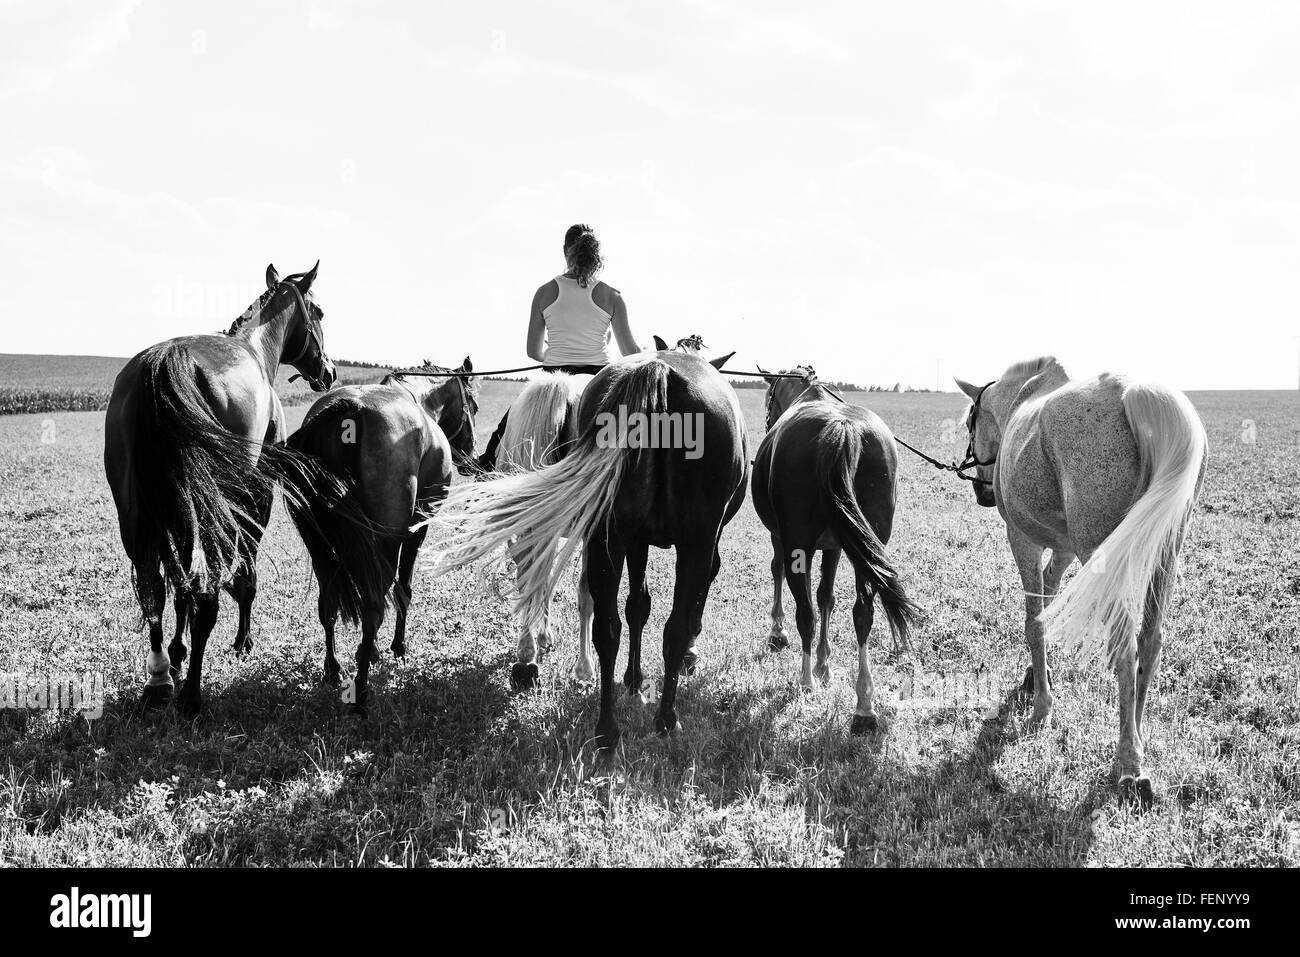 B&W rear view image of woman riding and leading six horses in field - Stock Image